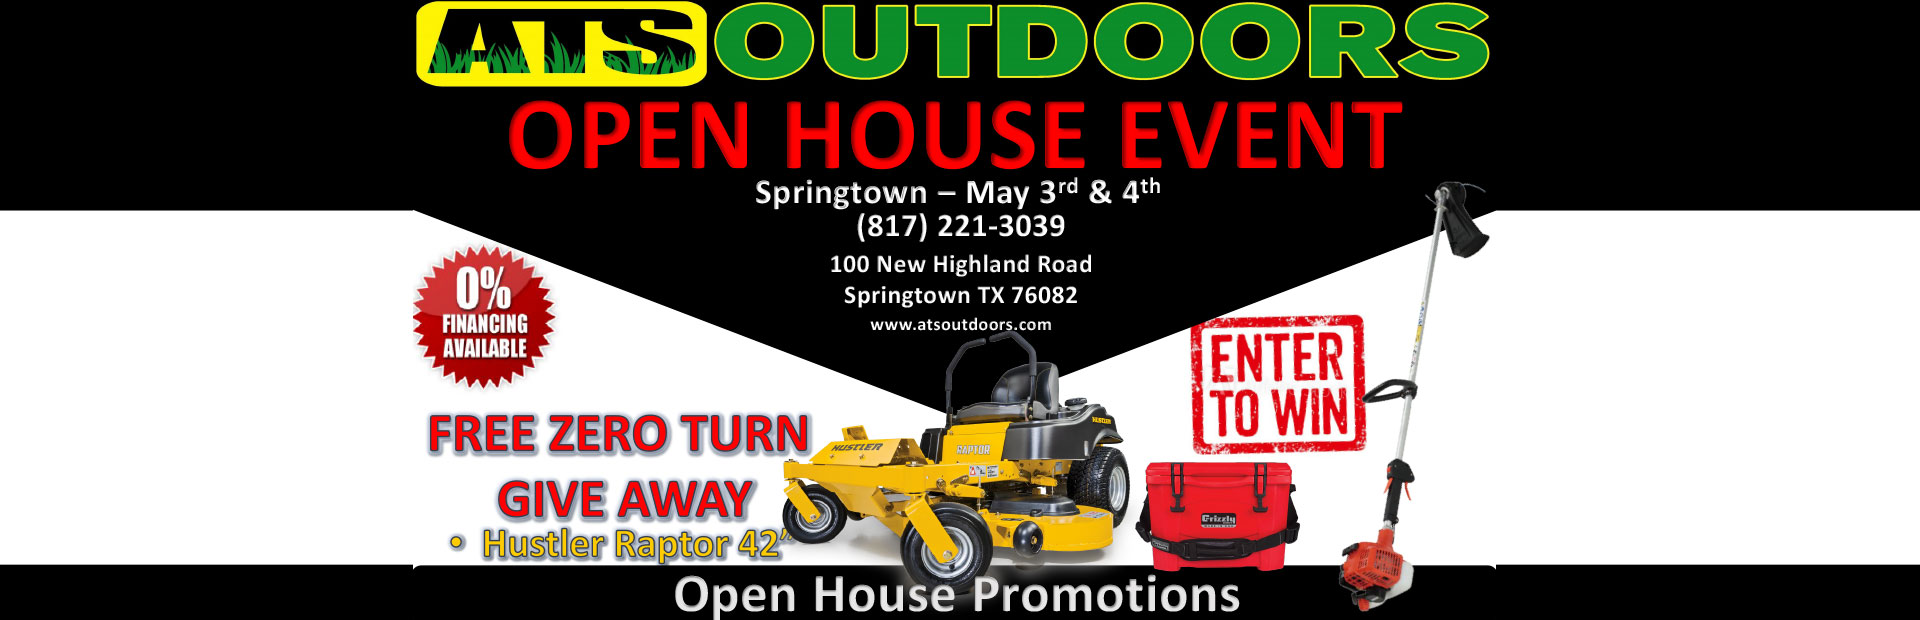 Ats Outdoors open house event: Join us on April 12th & April 13th.